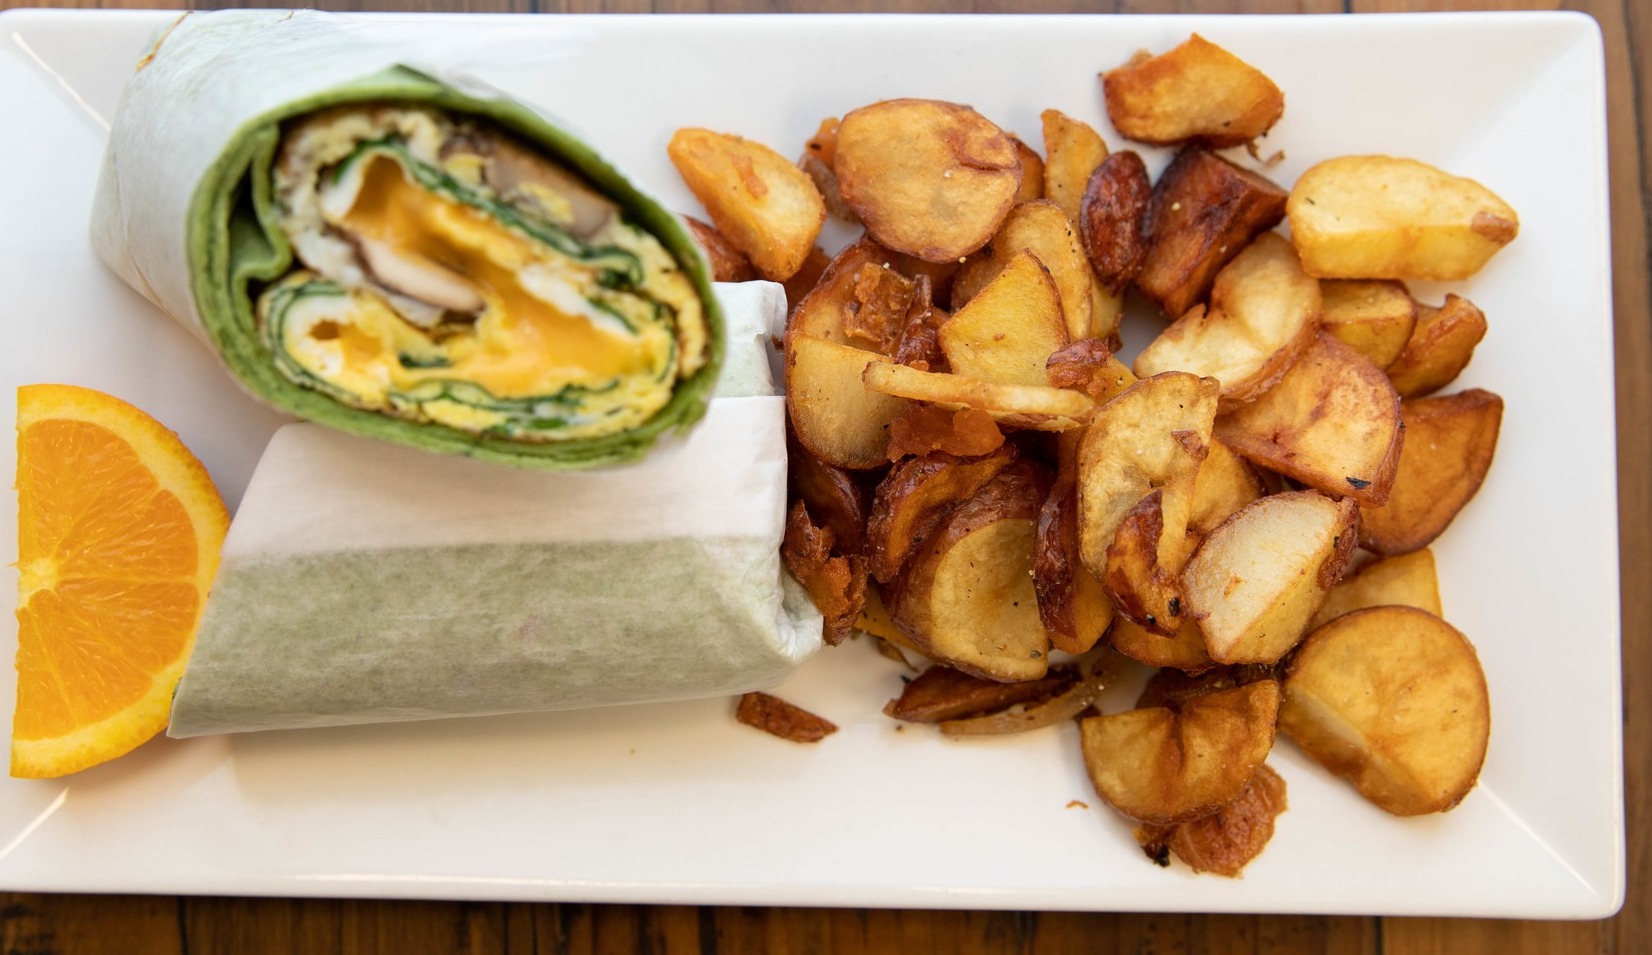 Breakfast Wraps at Sugar and Spice Cafe